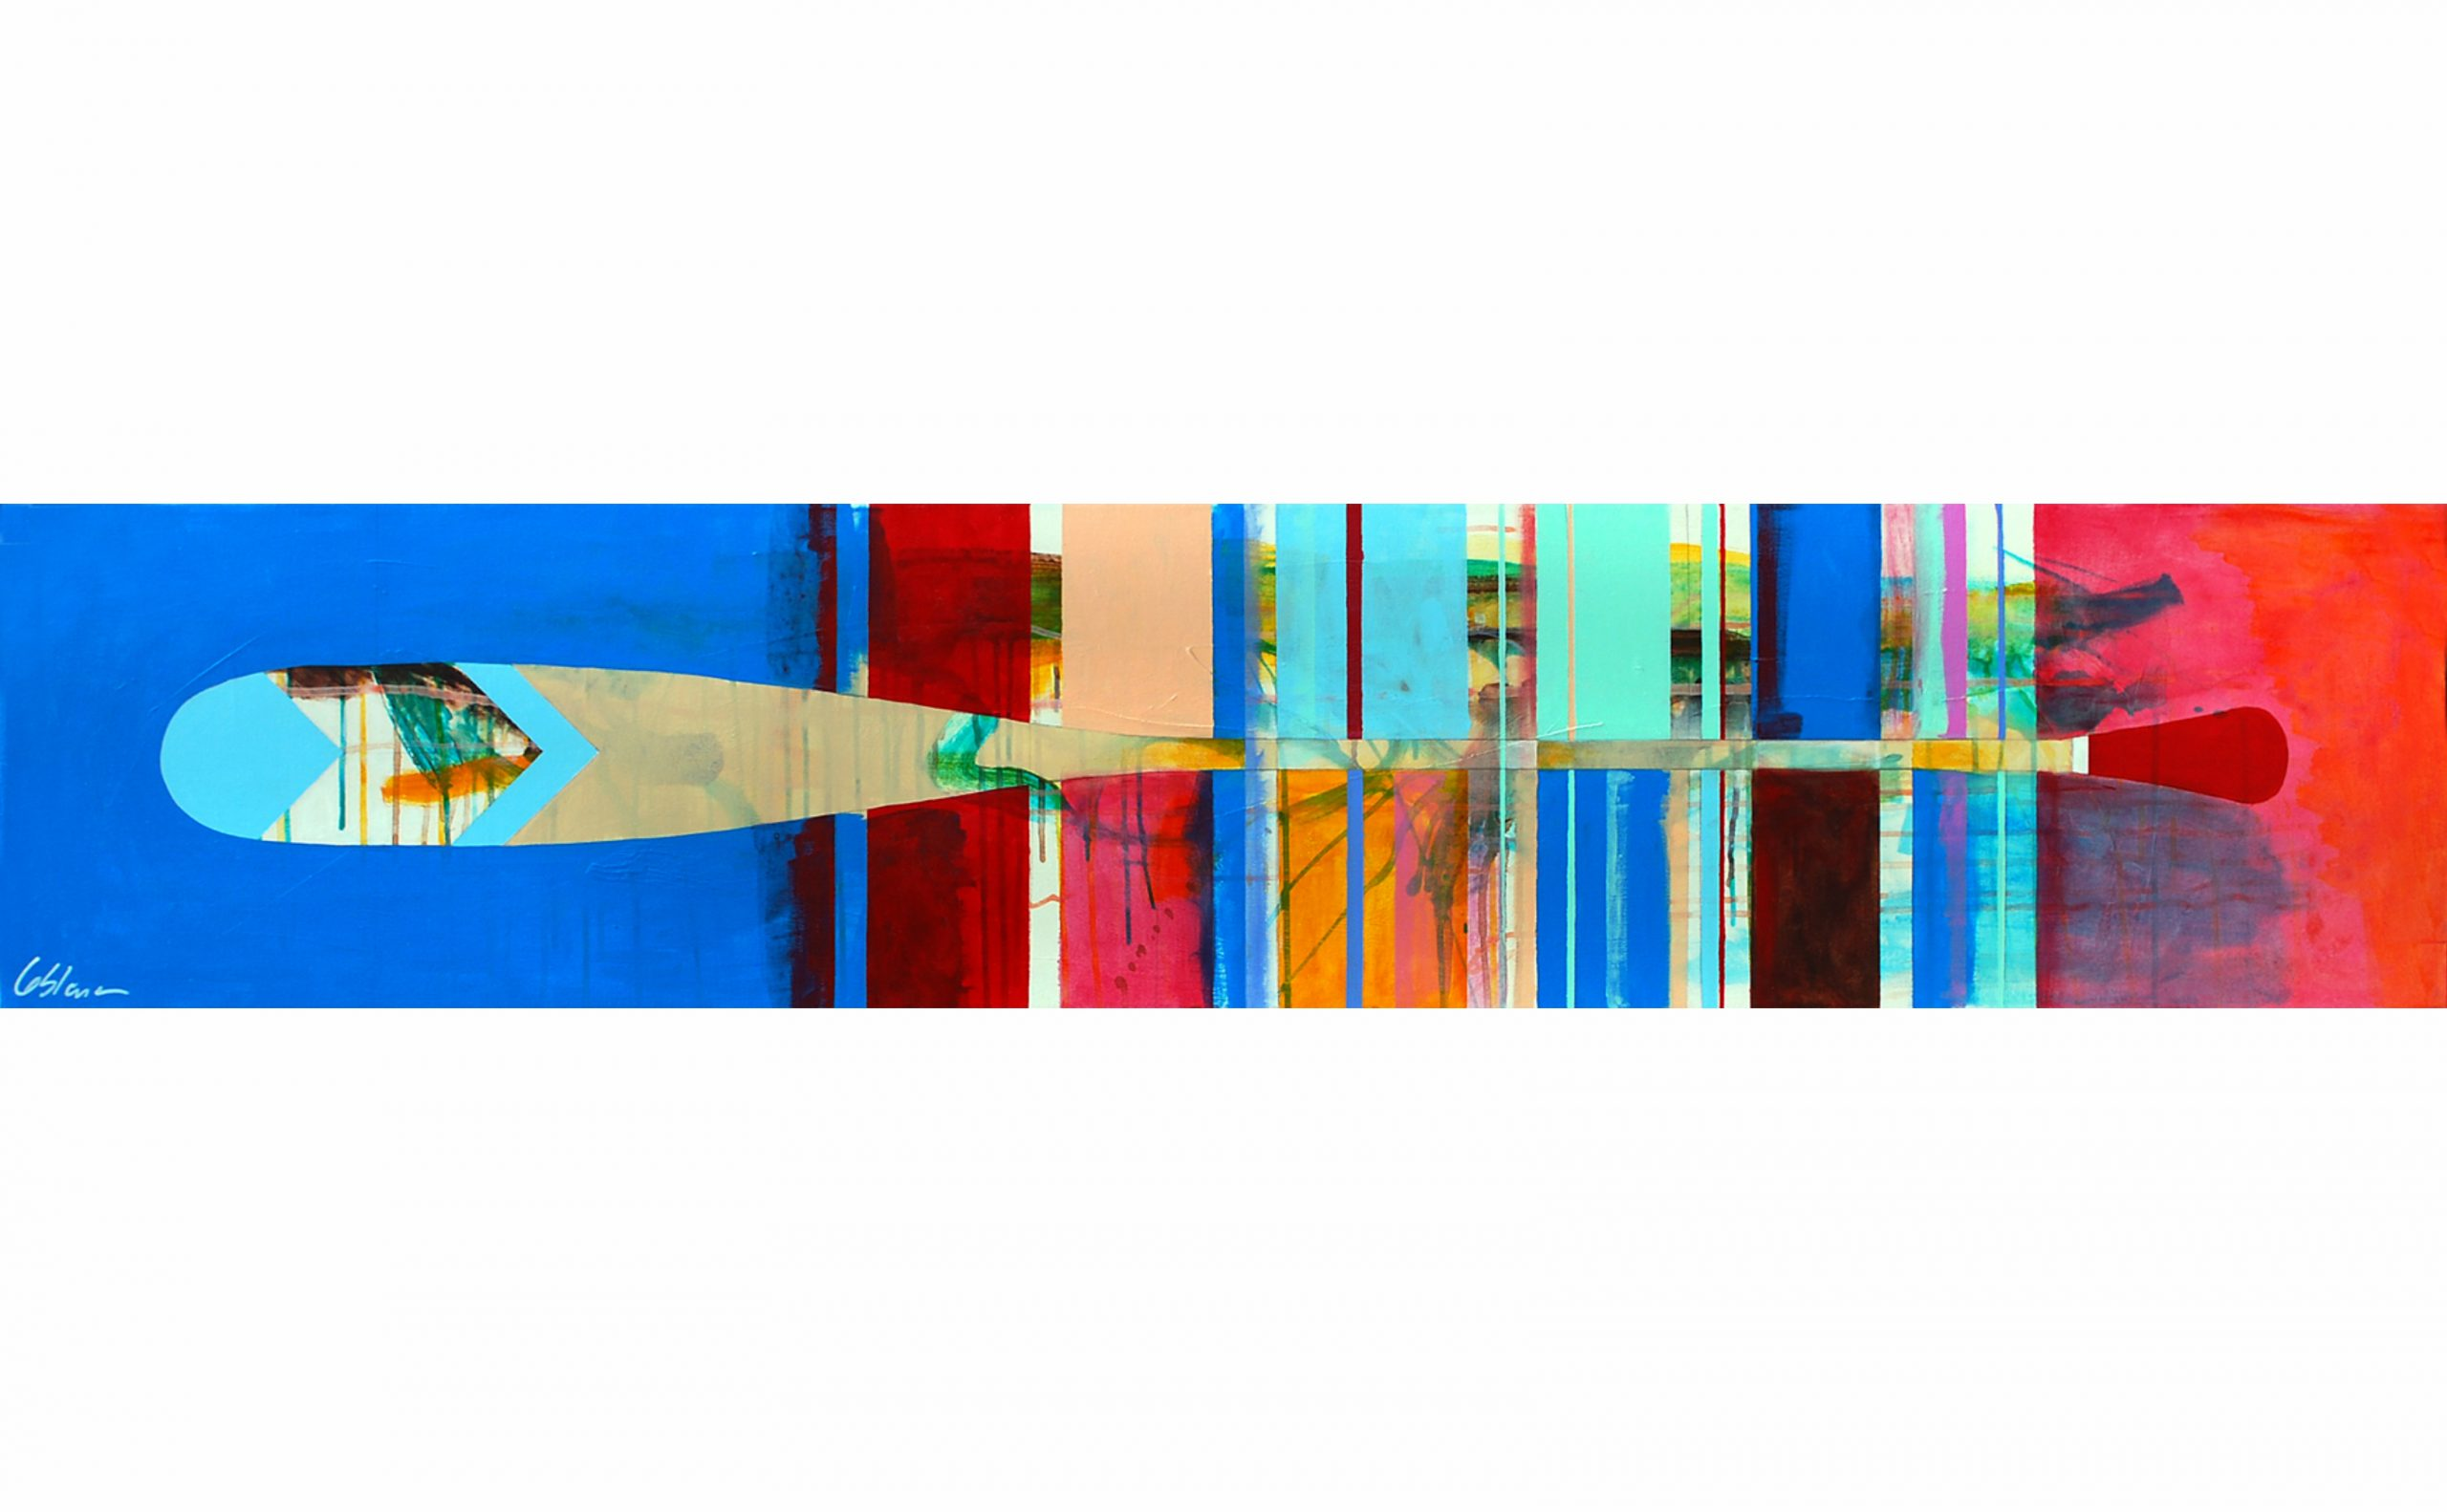 Aviron 30-02, mixed media paddle painting by Sylvain Leblanc | Effusion Art Gallery + Cast Glass Studio, Invermere BC